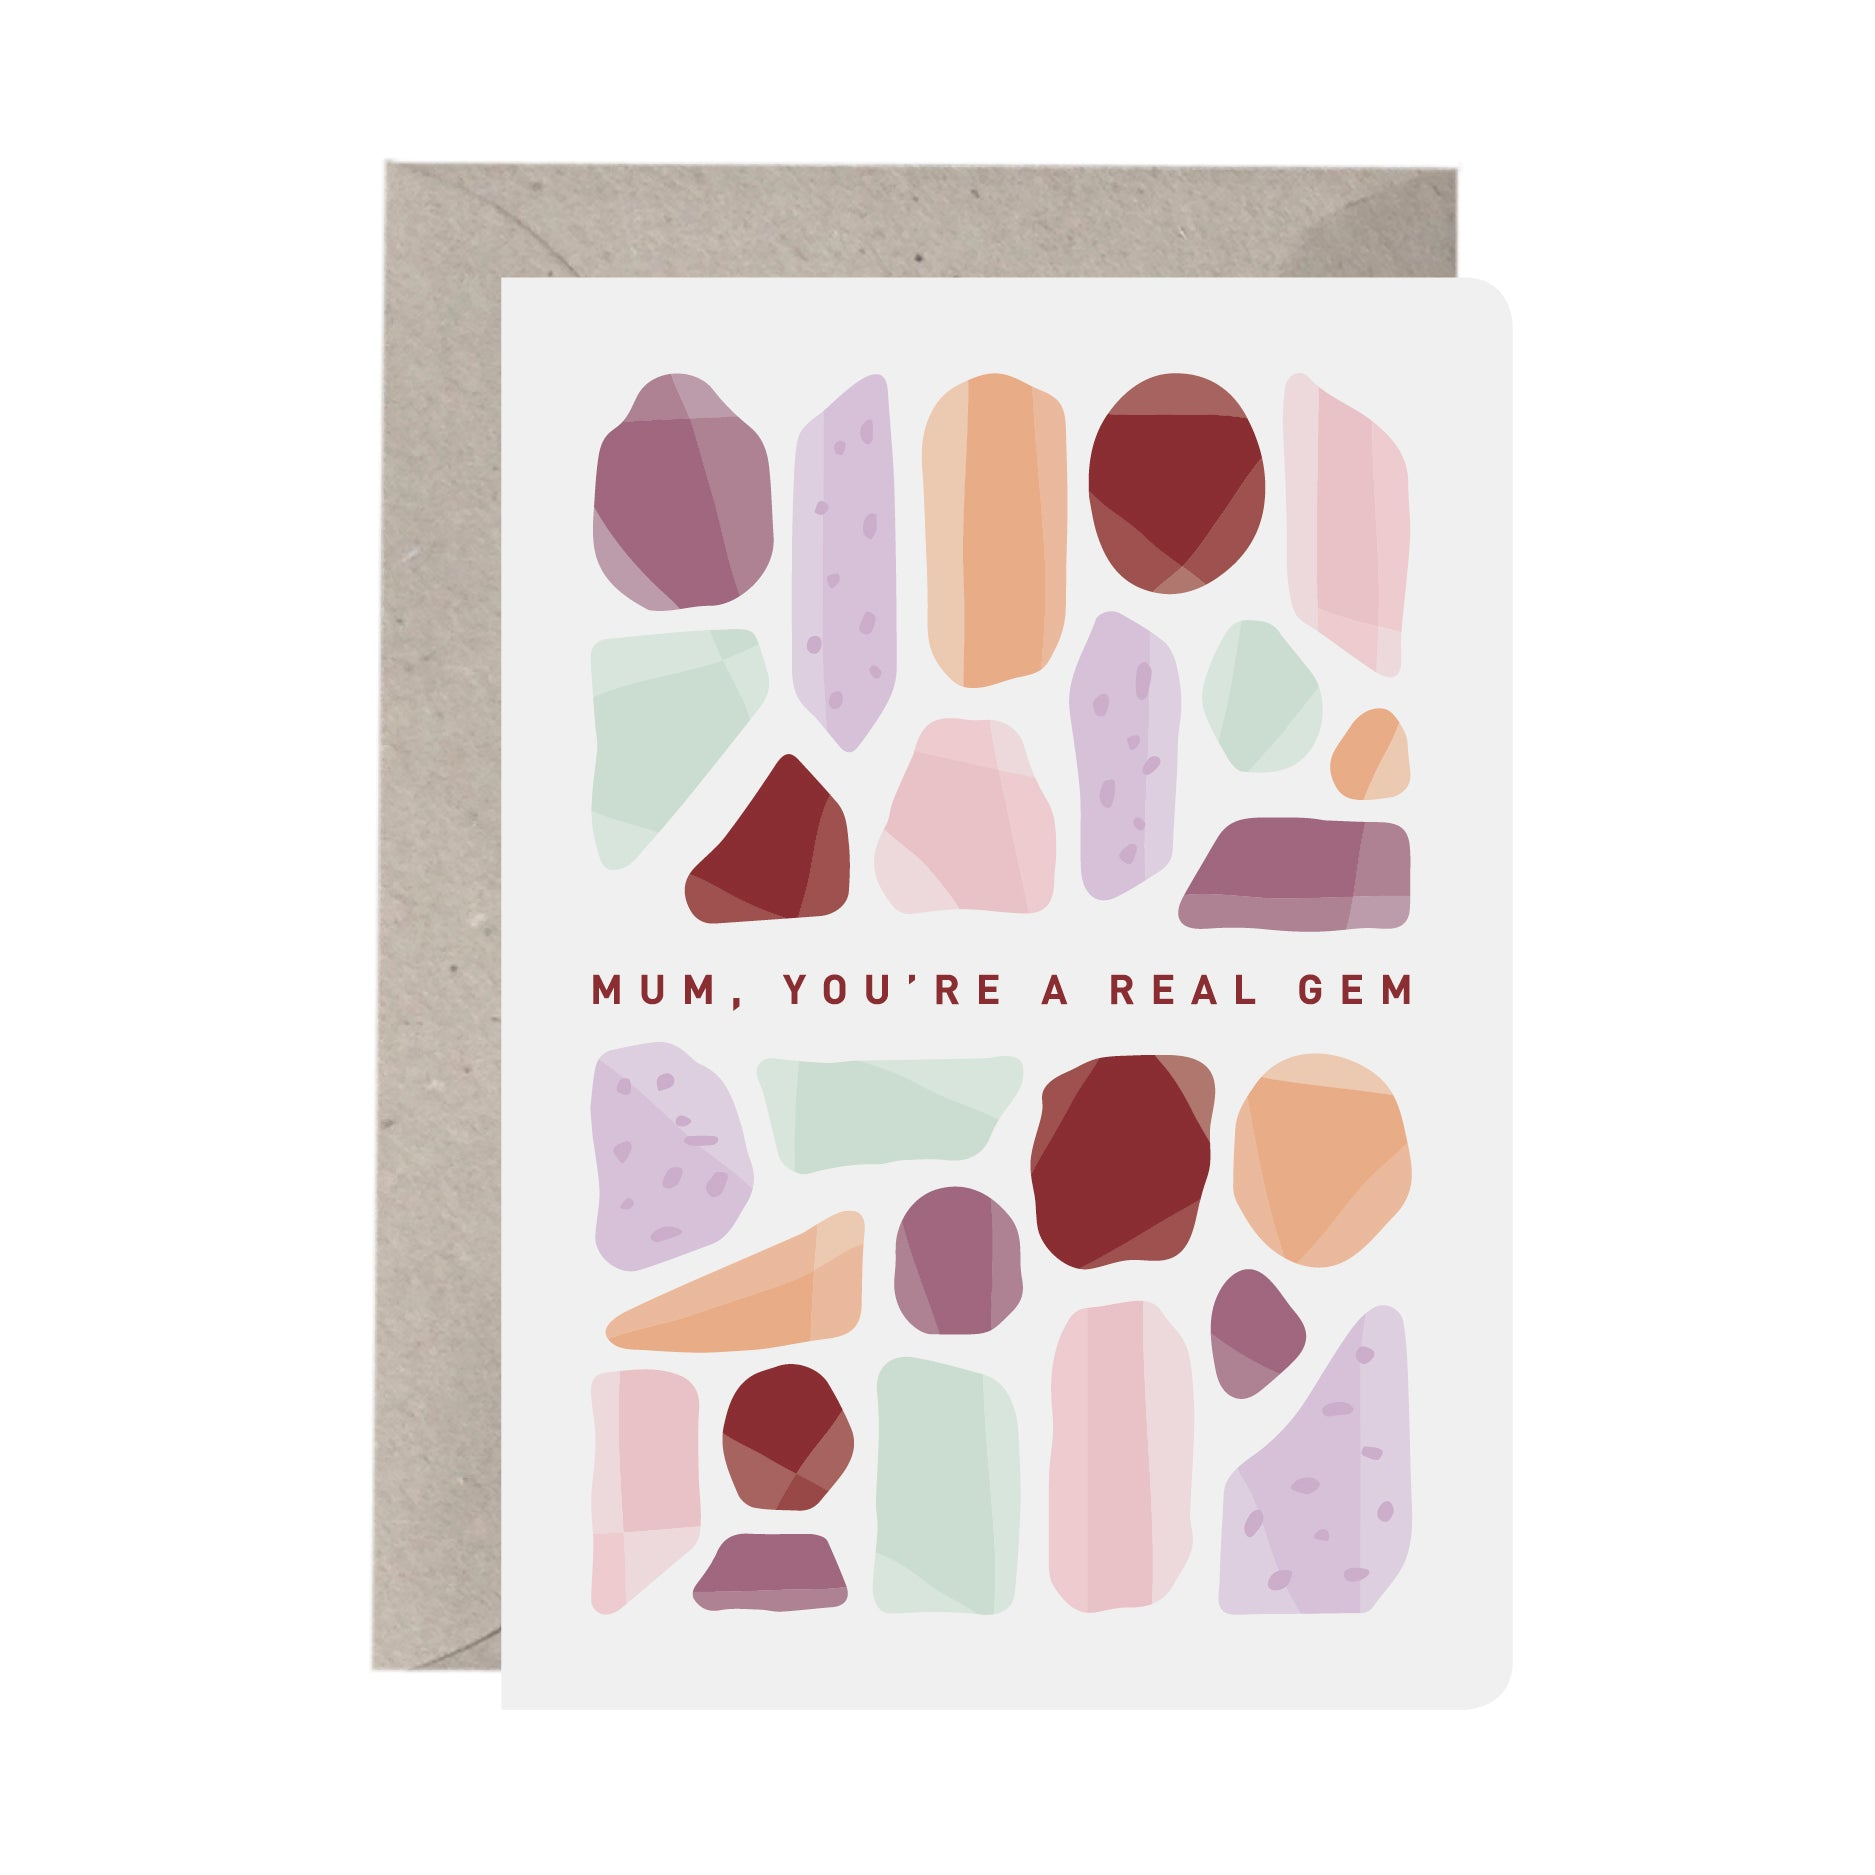 'Mum, You're A Real Gem' Greeting Card